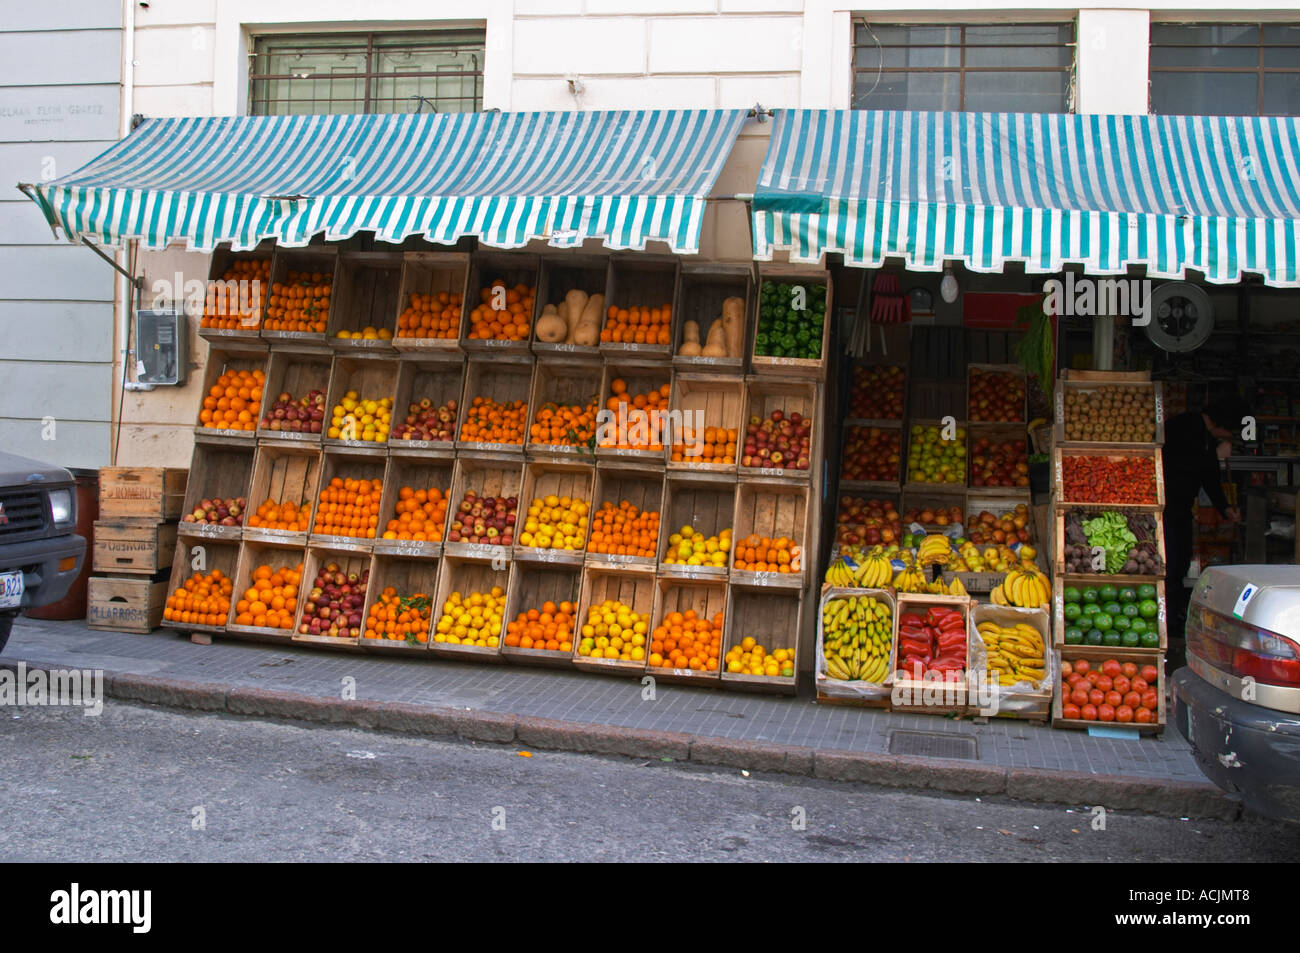 A Fruit And Vegetable Shop Displaying Products In Wooden Crates On The  Street: Tomatoes,